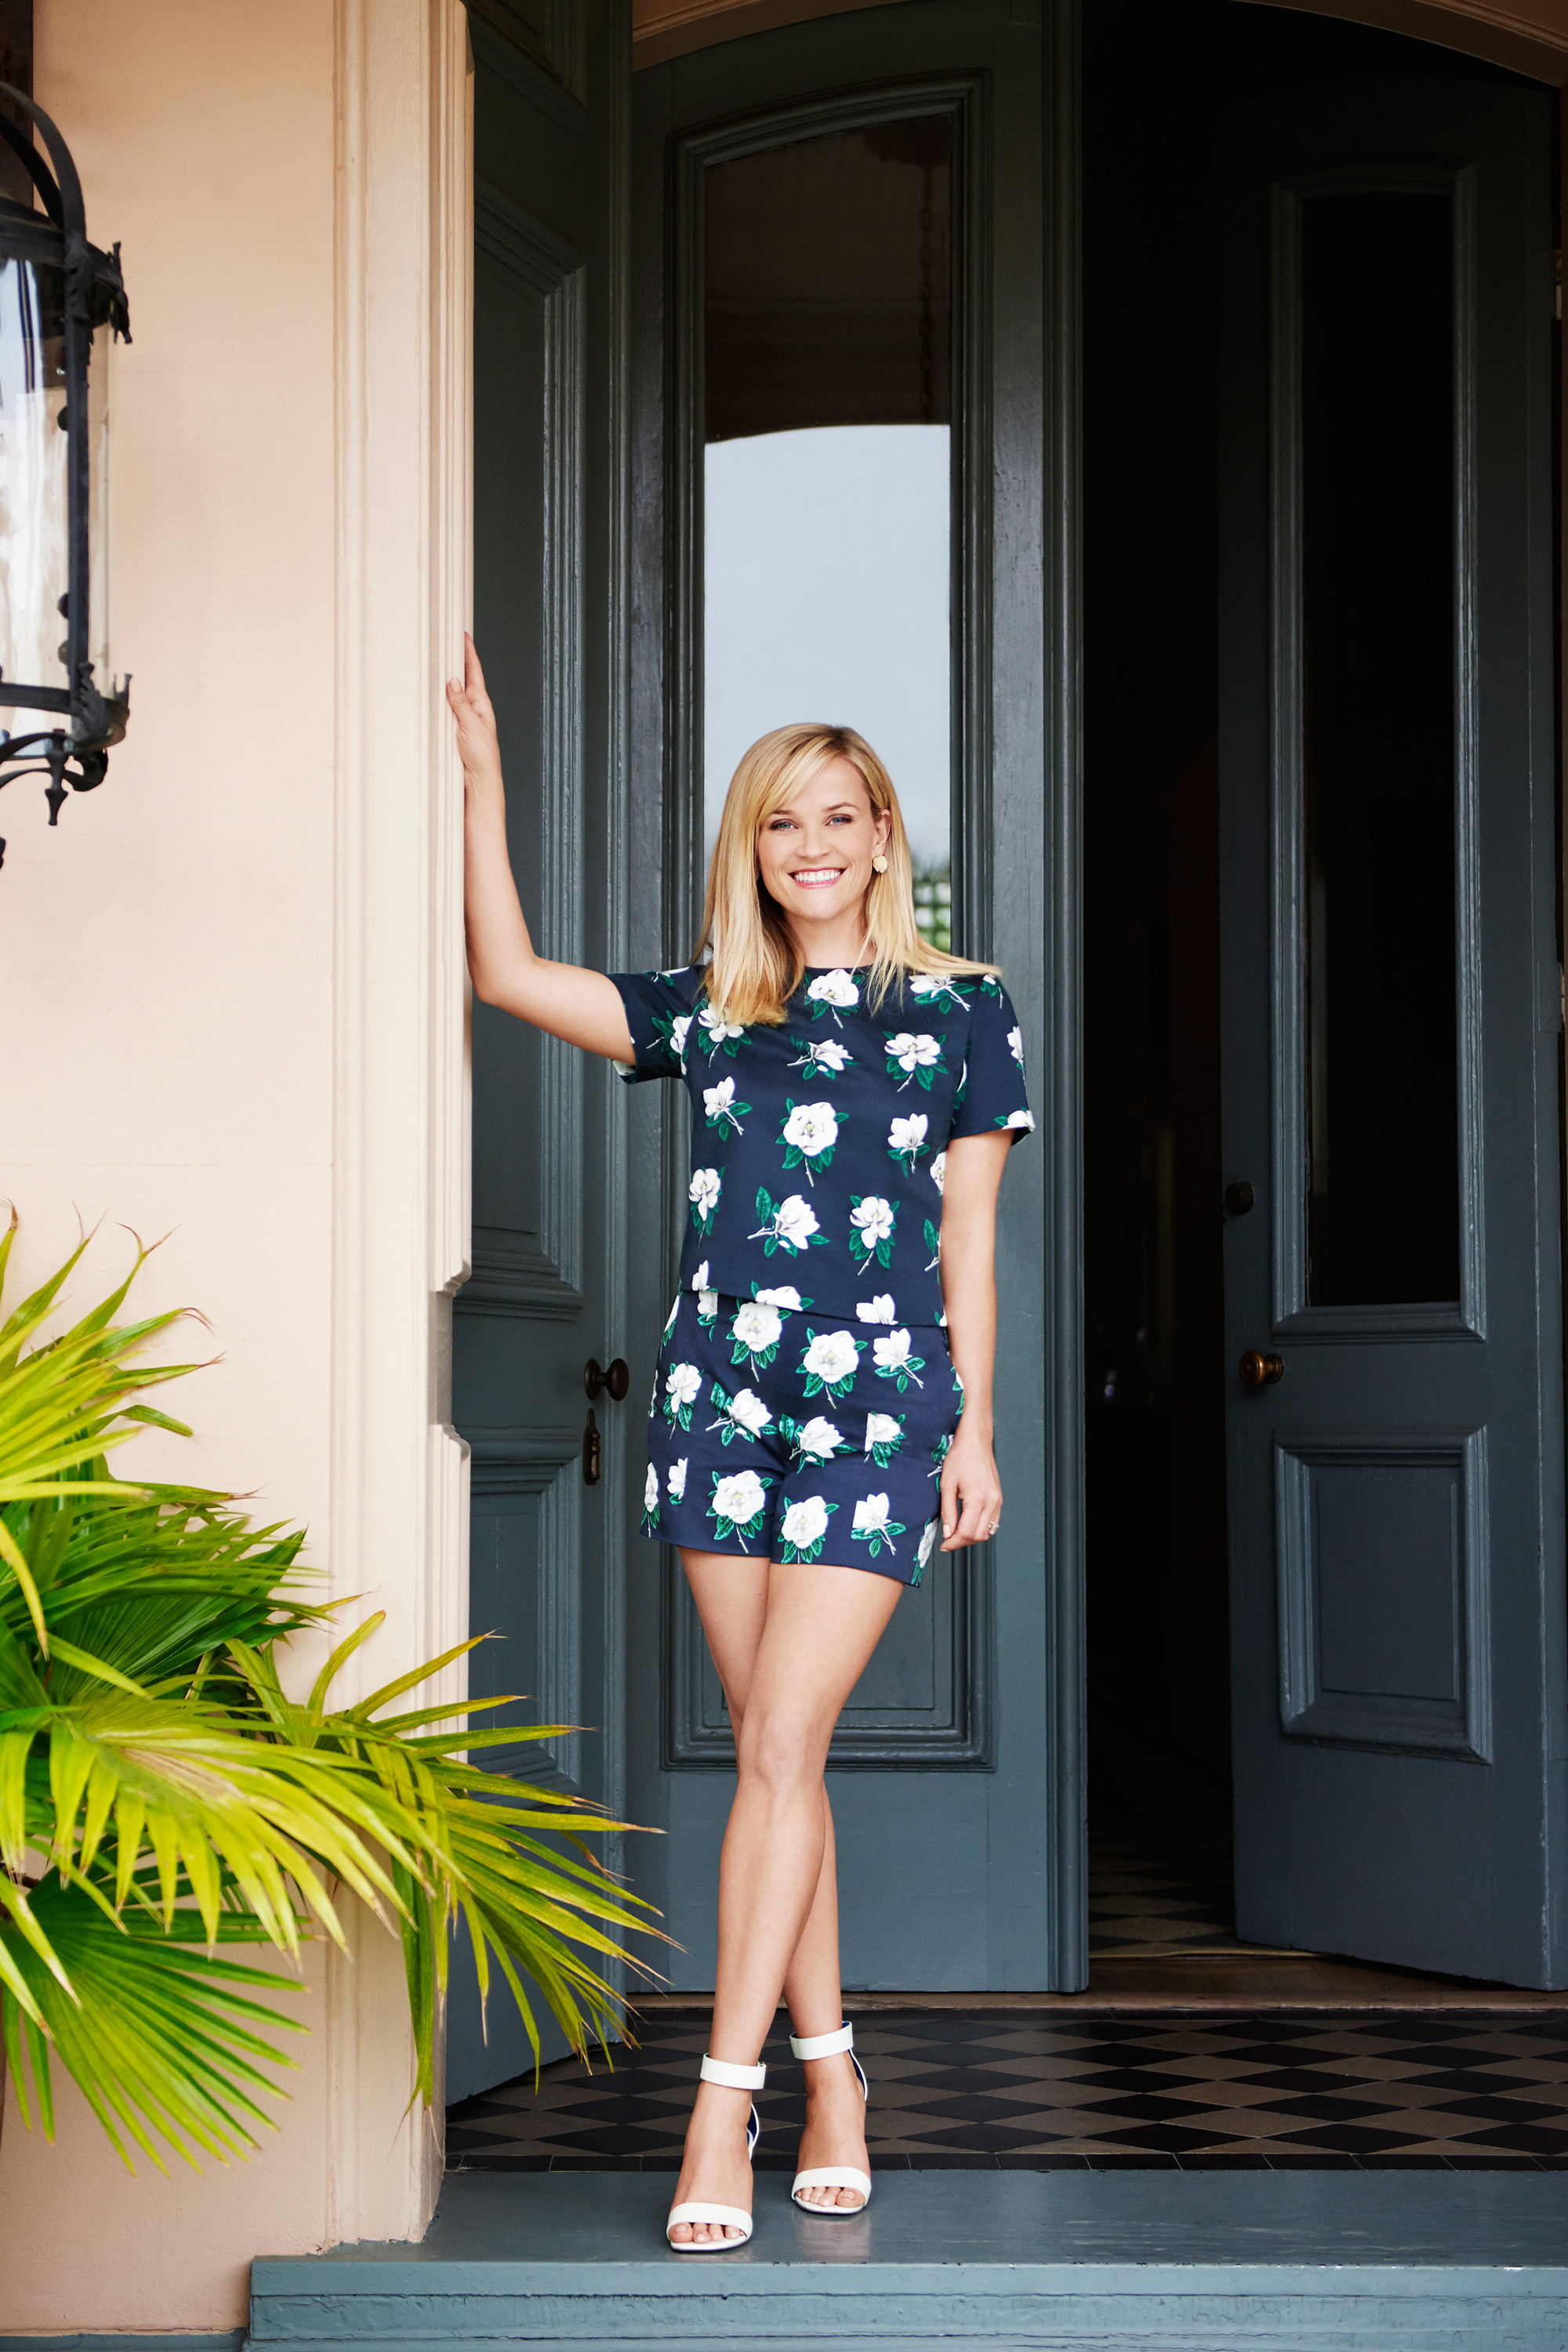 Reese Witherspoon Launches Clothing Line